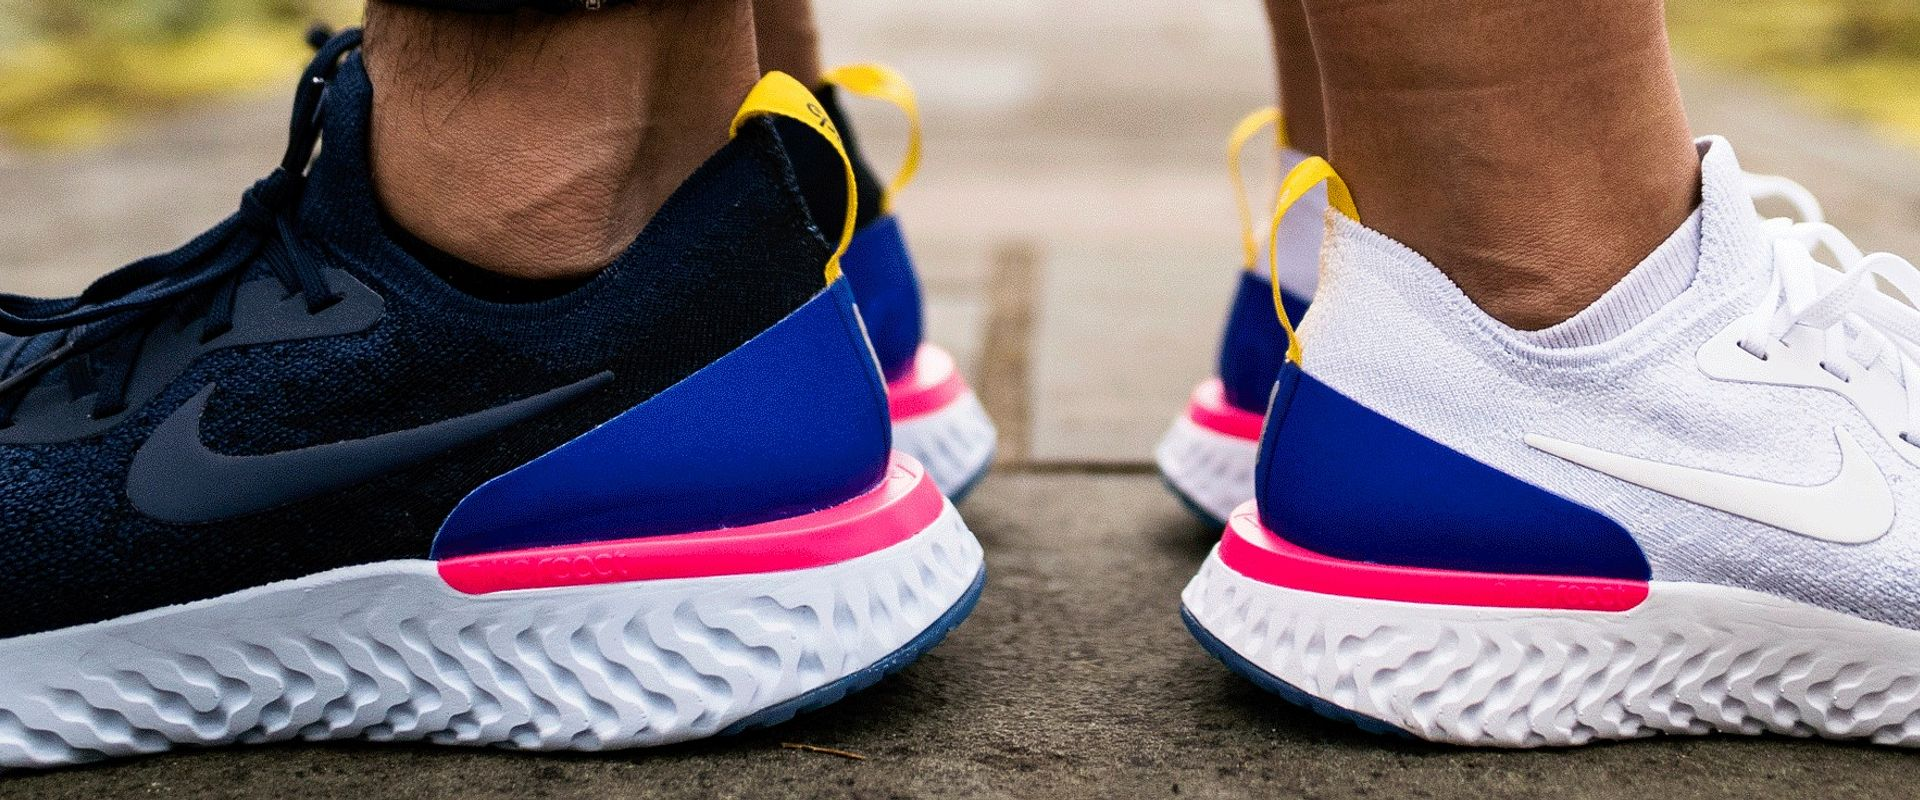 Nike's Epic React Flyknit is Here